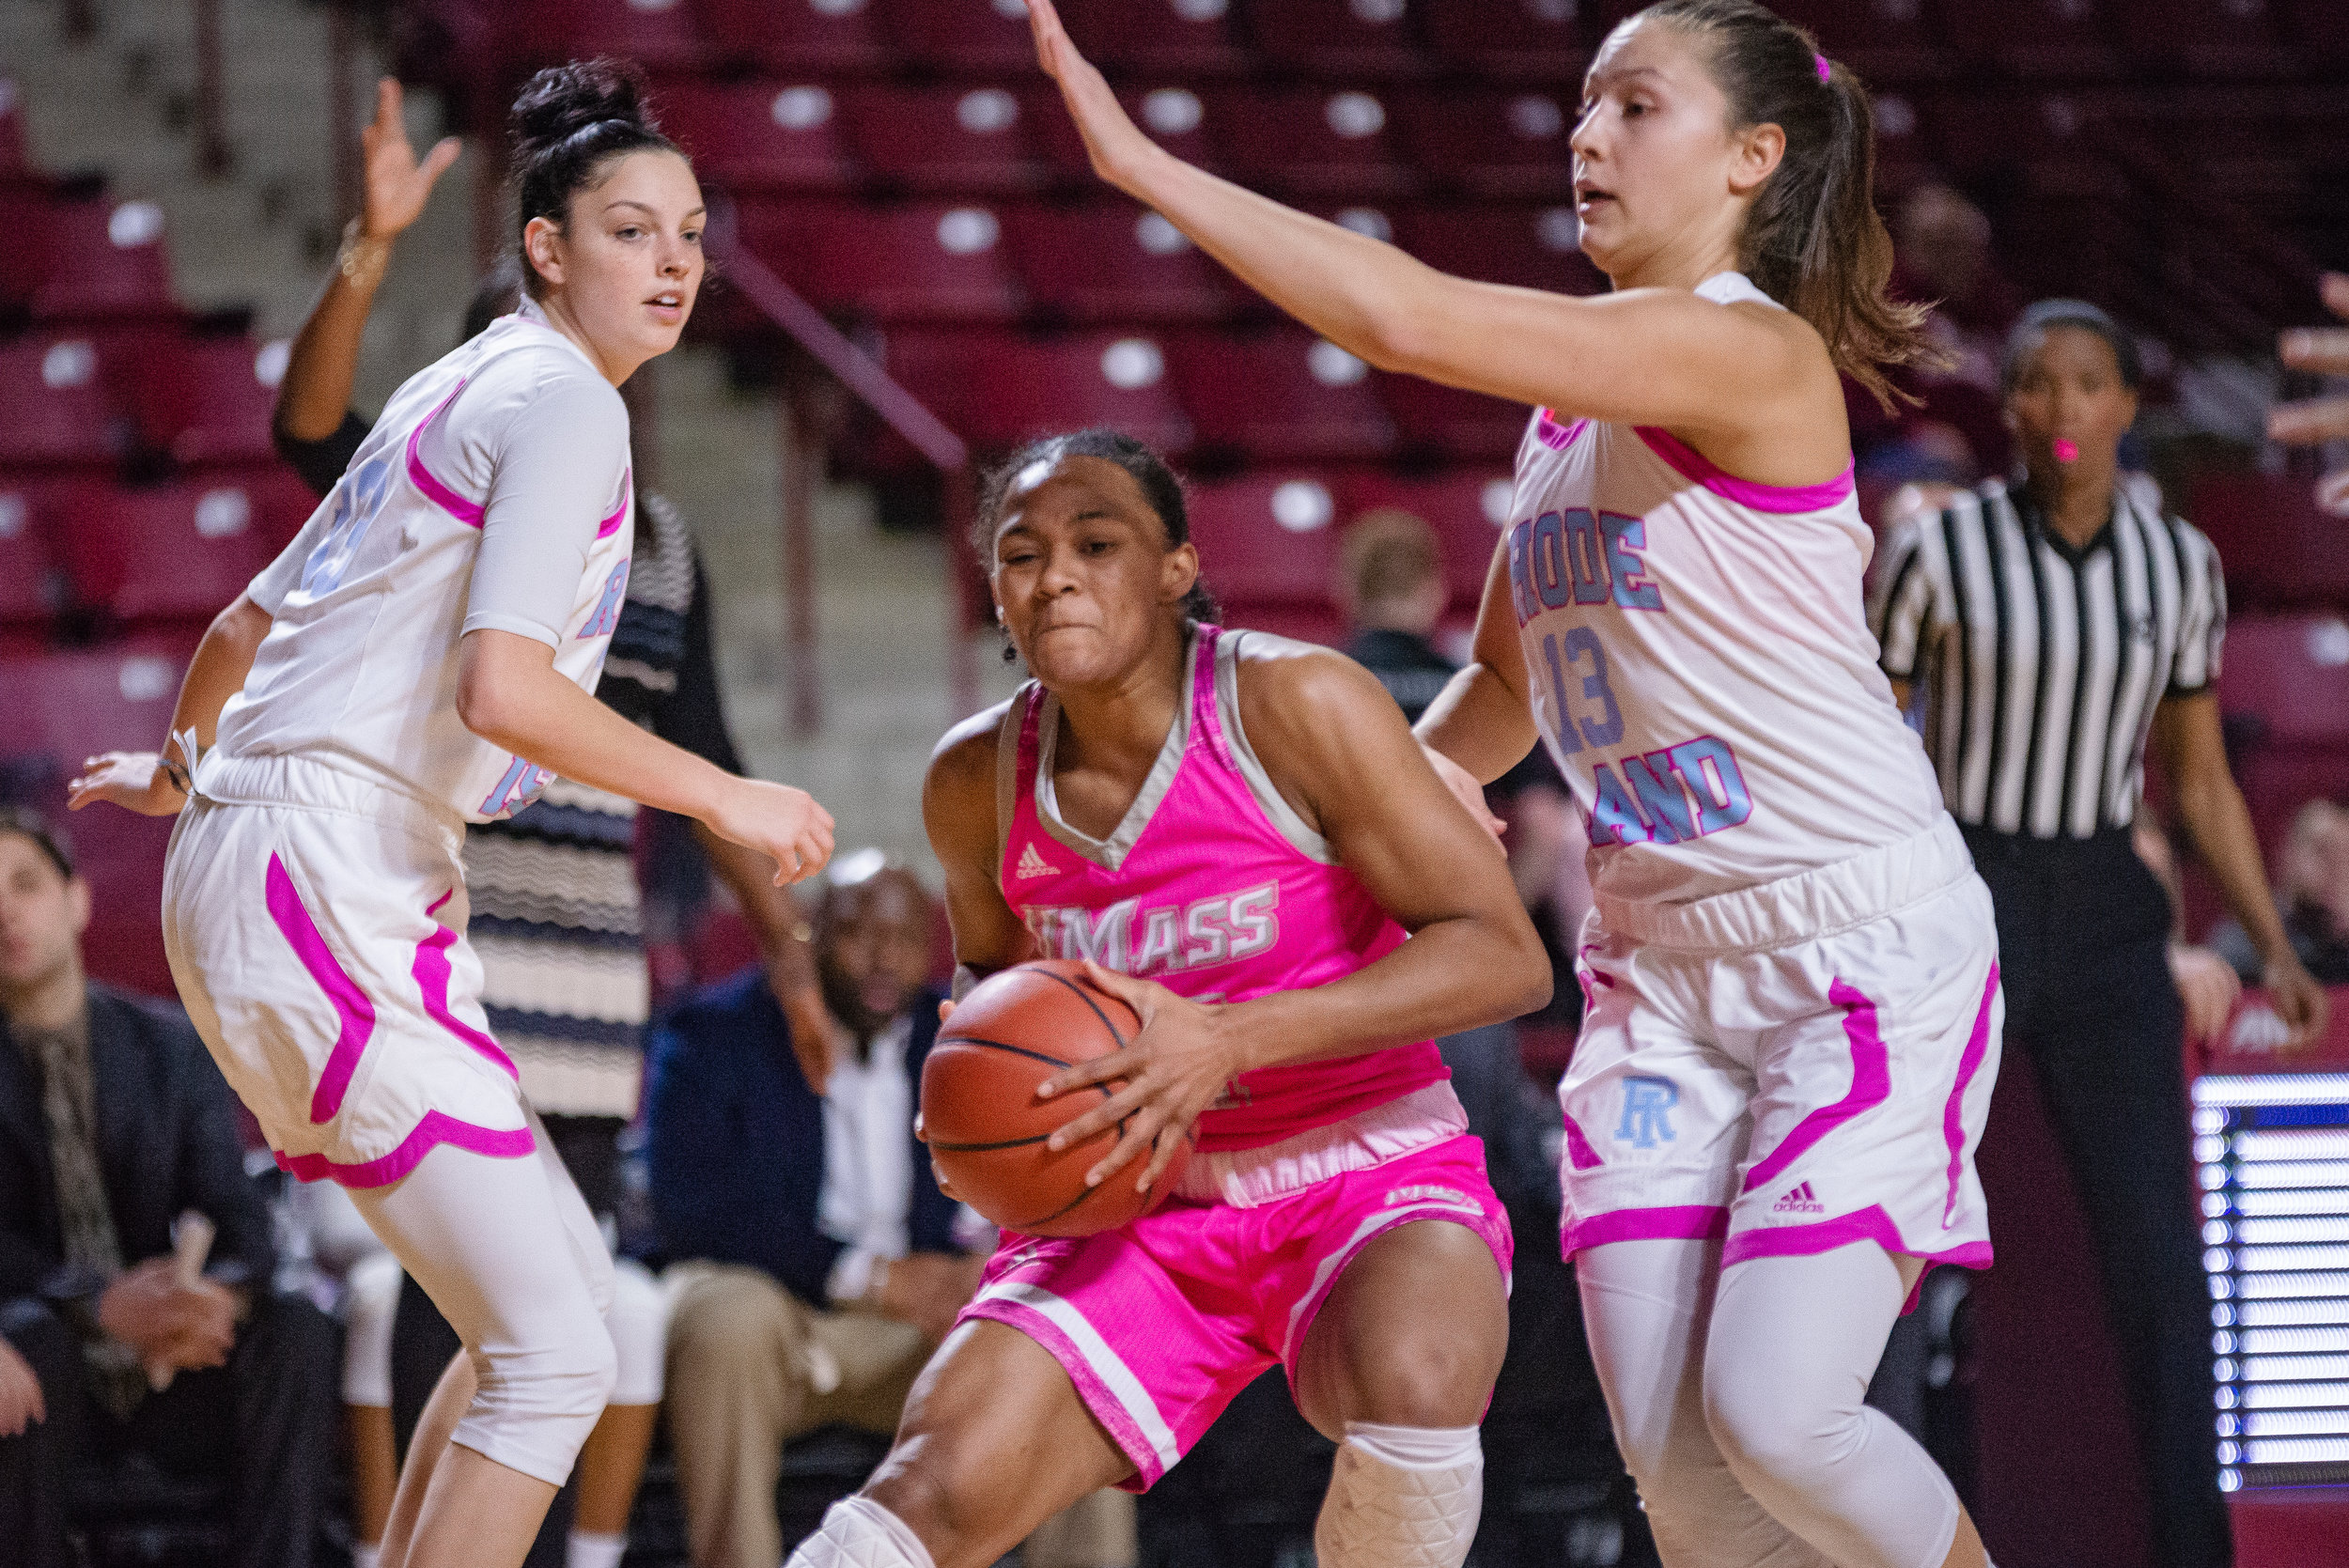 UMass Women's Basketball defeated Rhode Island on Sunday Feb. 10, 2019 at the Mullins Center in Amherst.  (Photo by Judith Gibson-Okunieff)